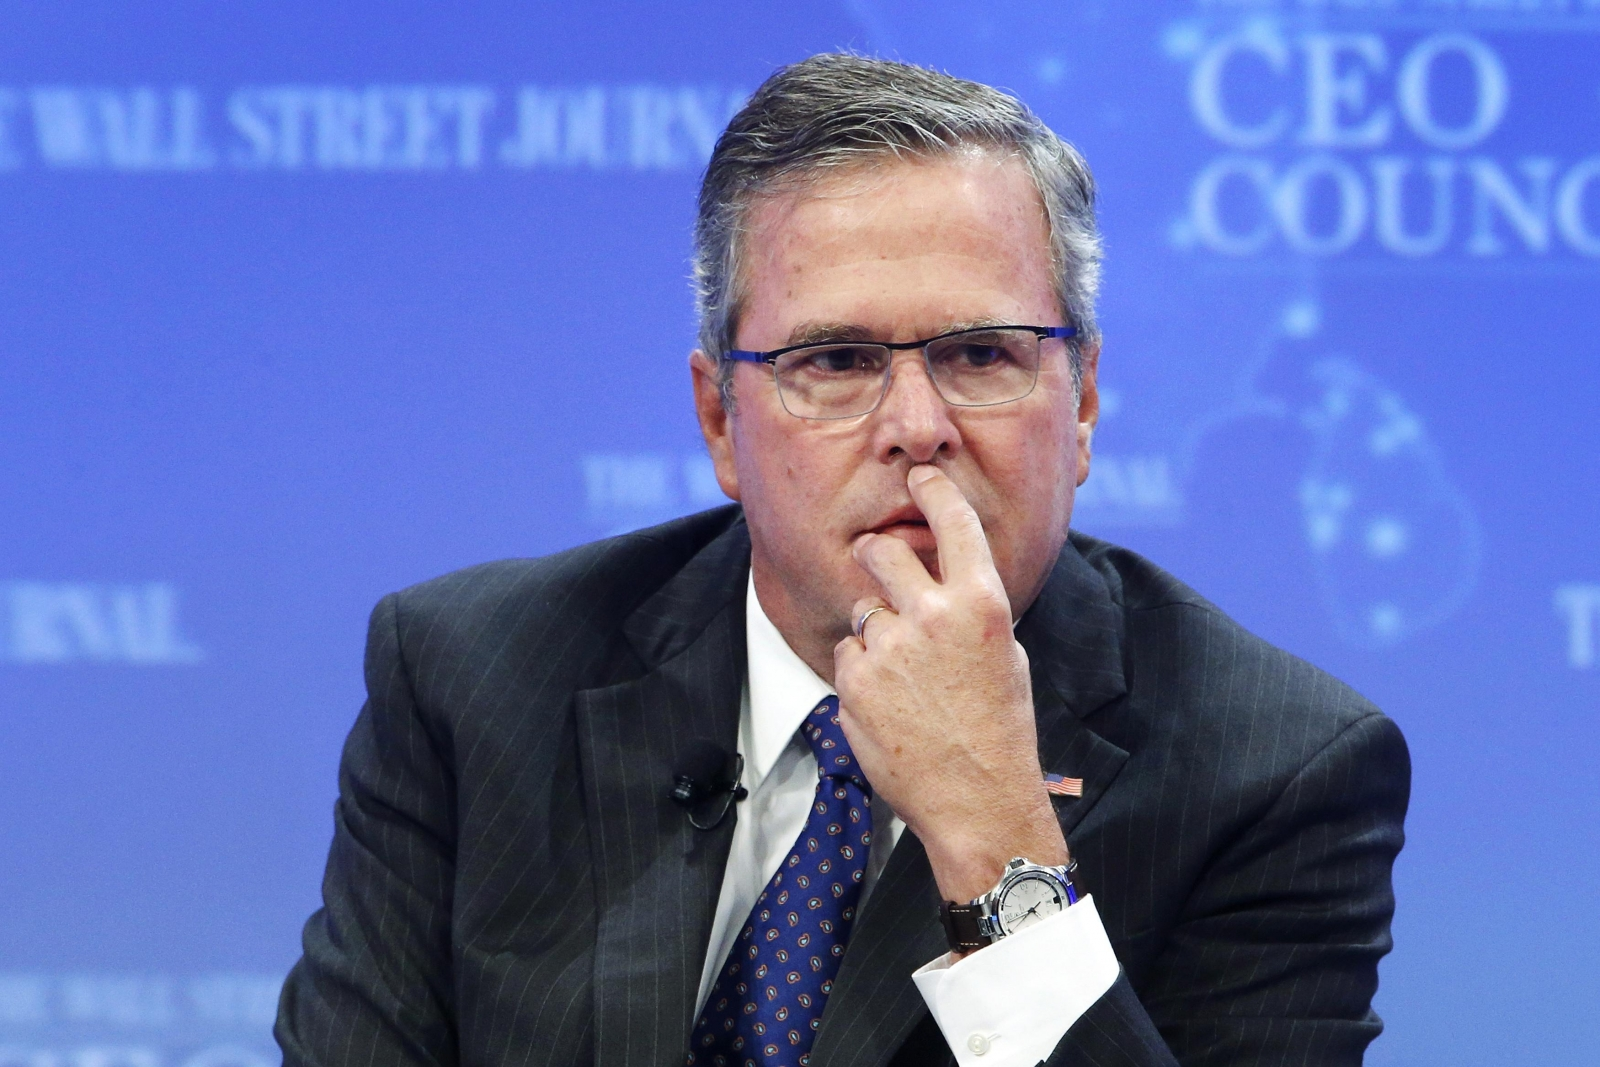 Jeb Bush explores 2016 US presidential run